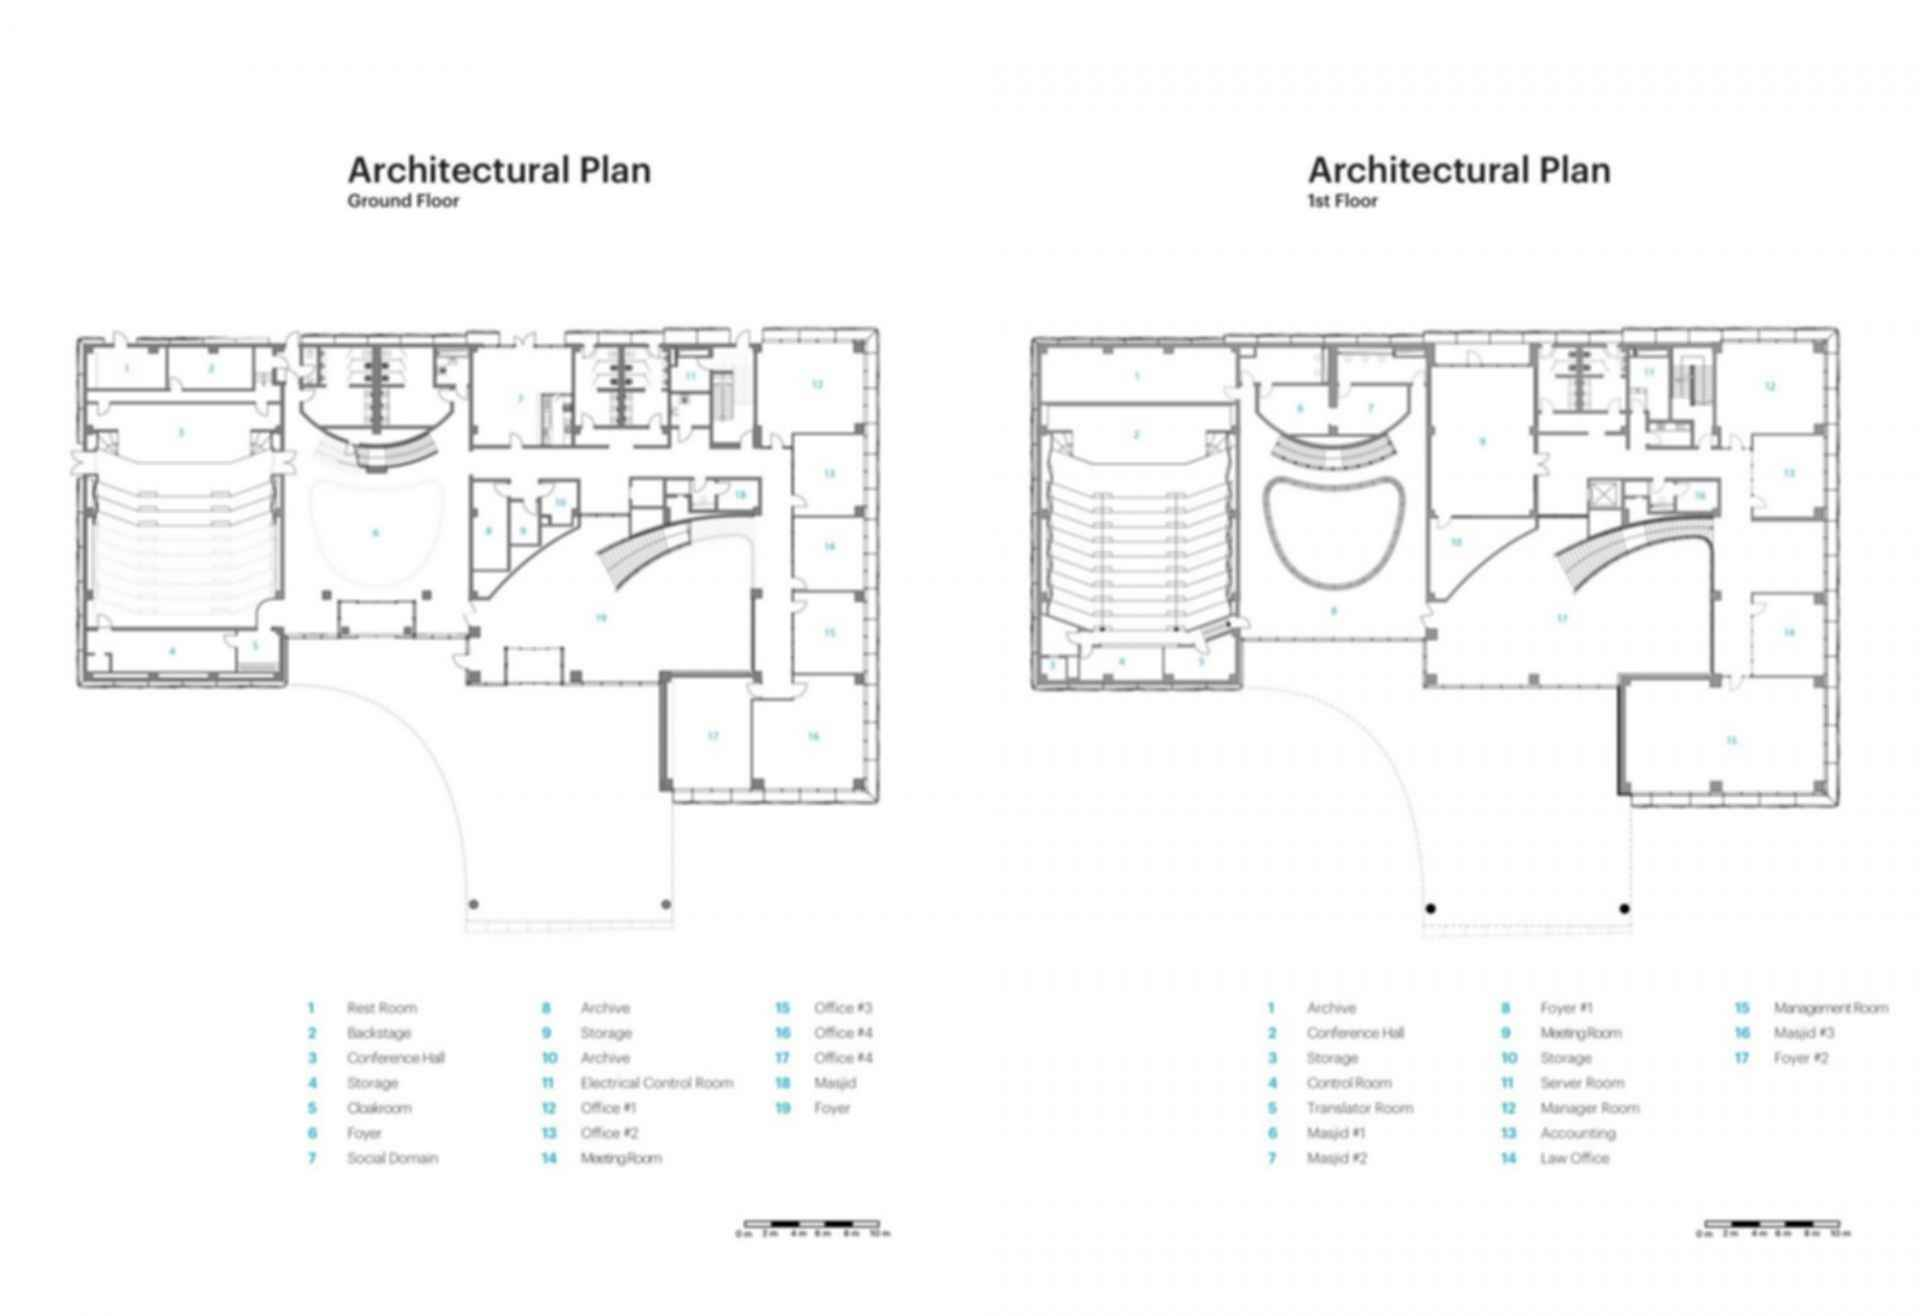 S2OSB Headquarters & Conference Hall - Floor Plan